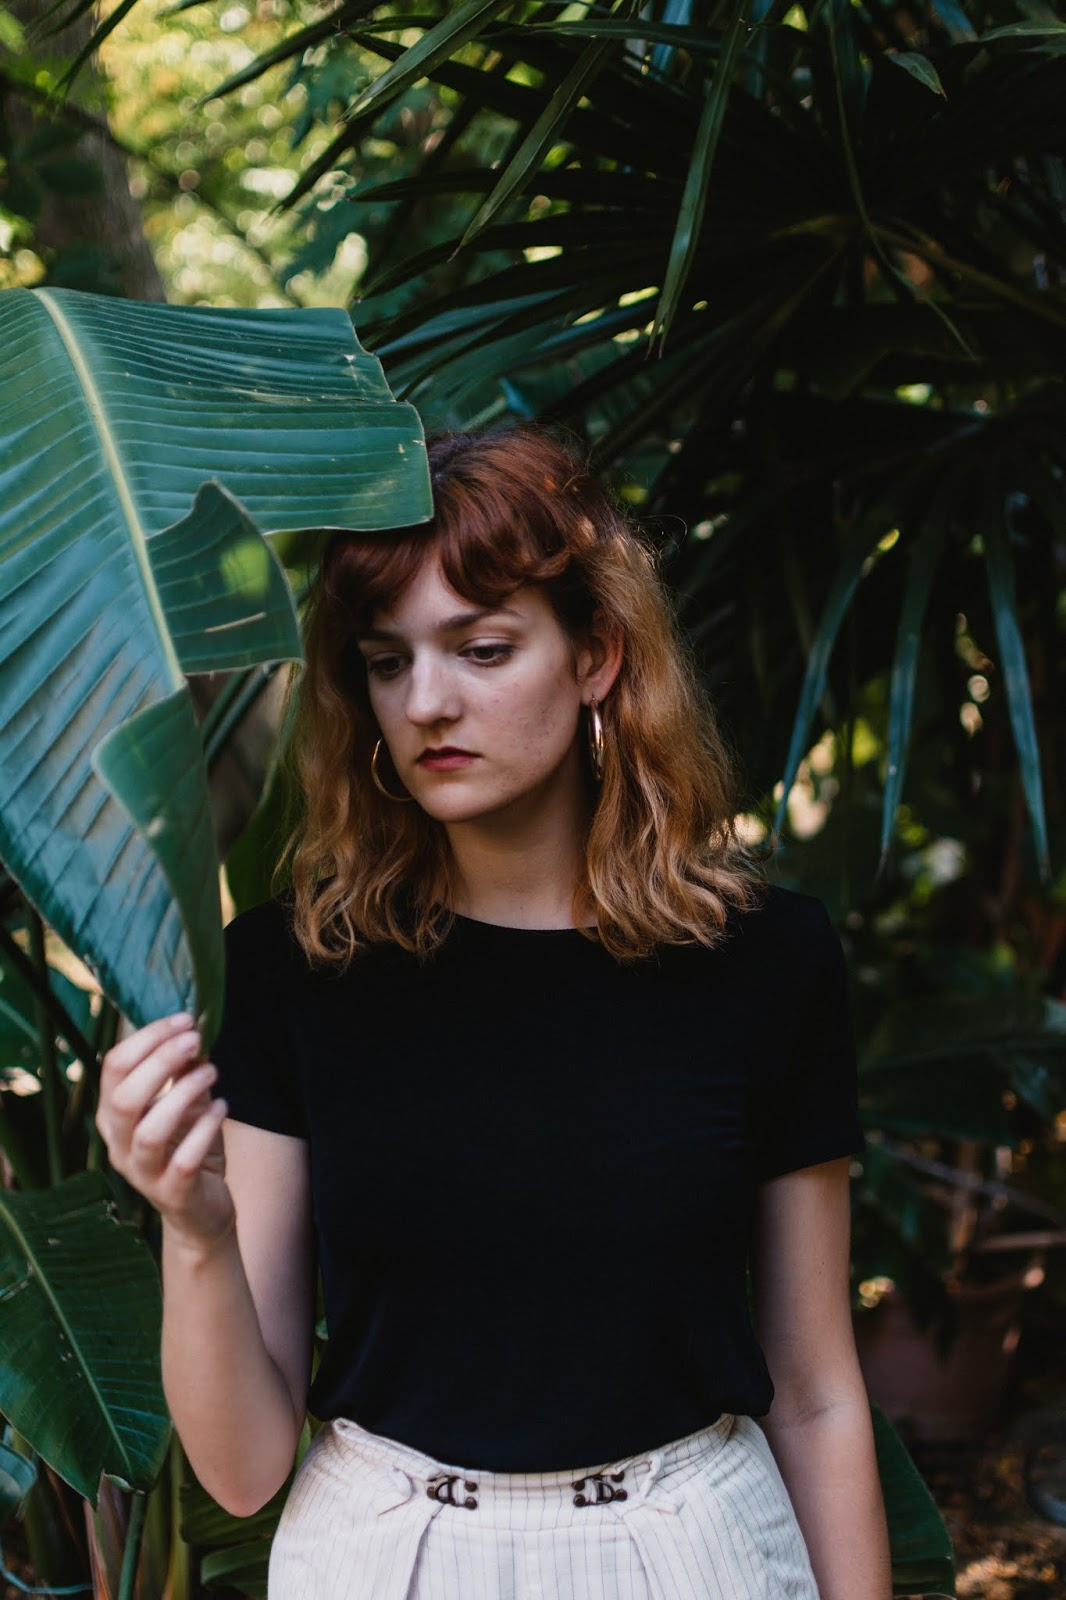 botanical garden portrait